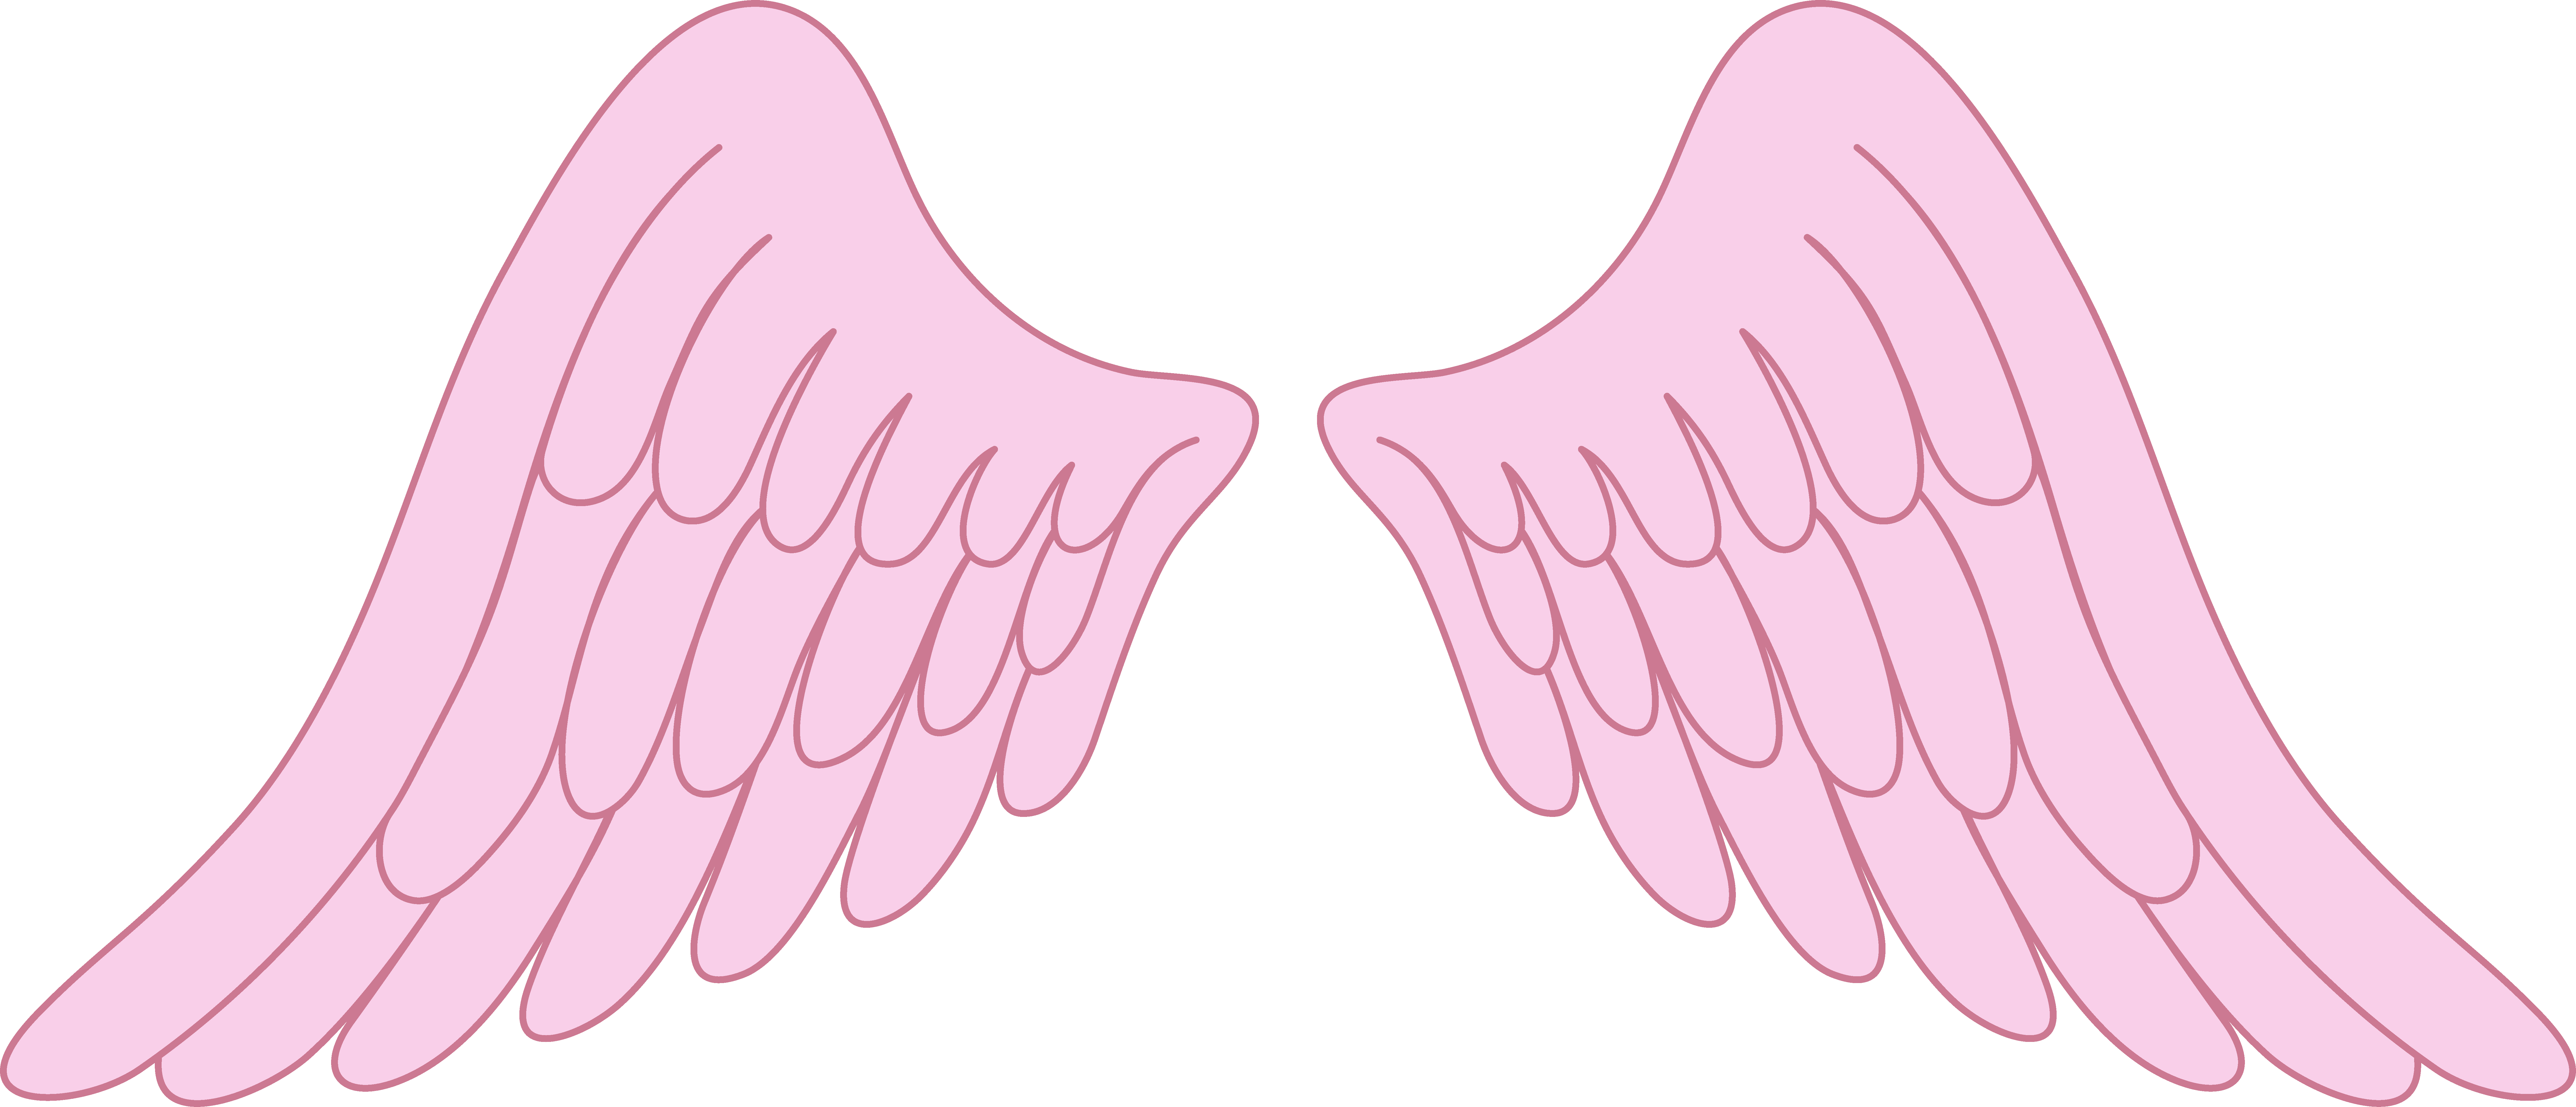 15 Baby Angel Wings Vector Art Images